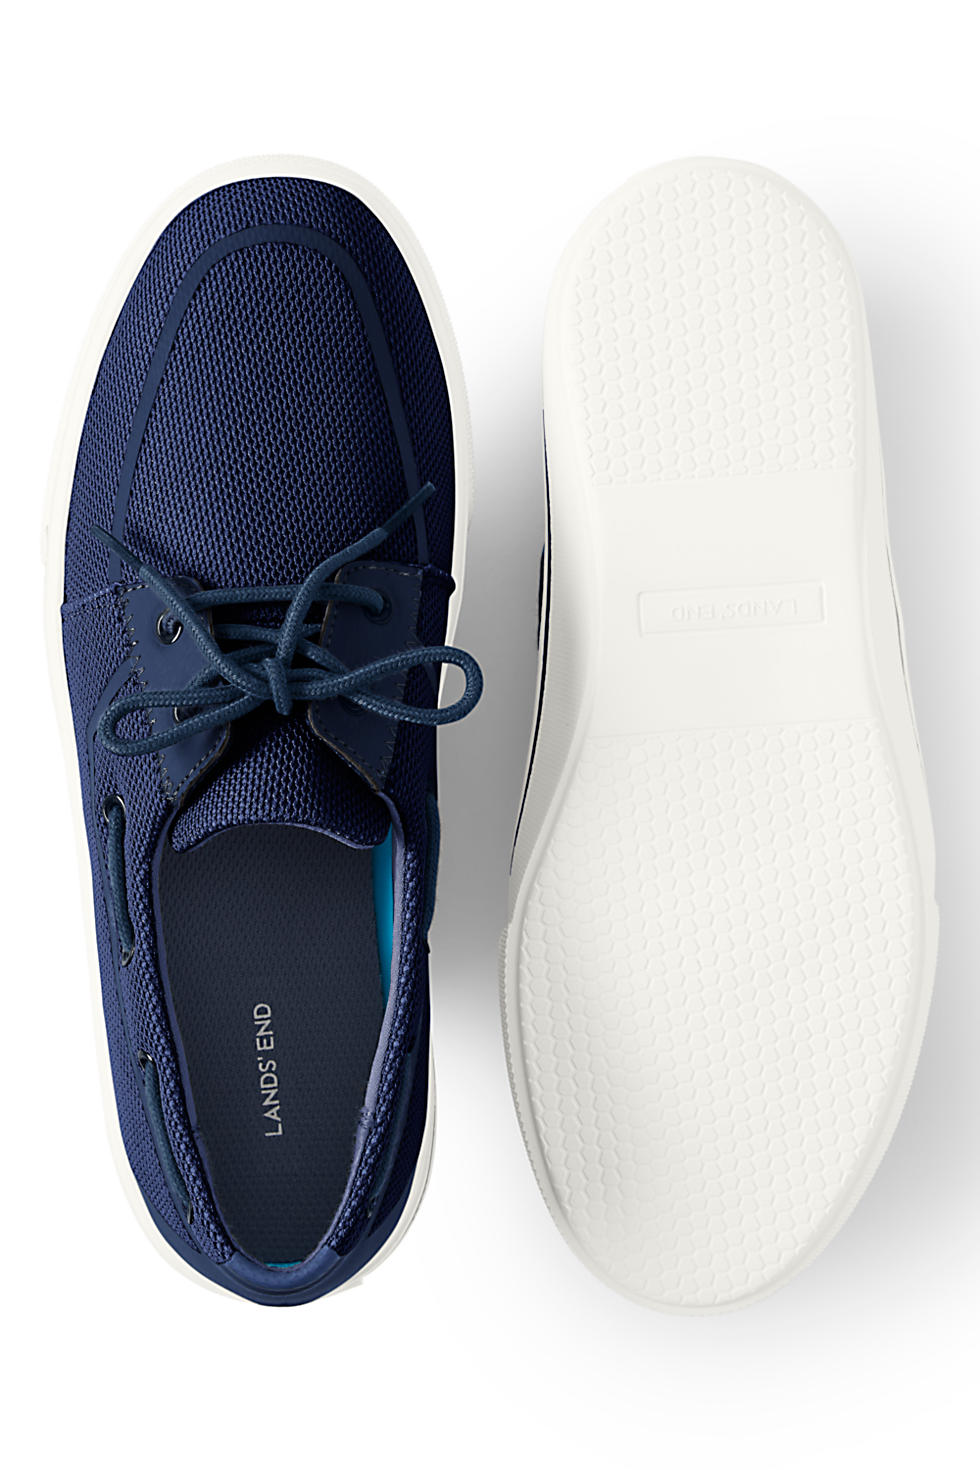 Lands' End Men's Lightweight Mesh Boat Shoes